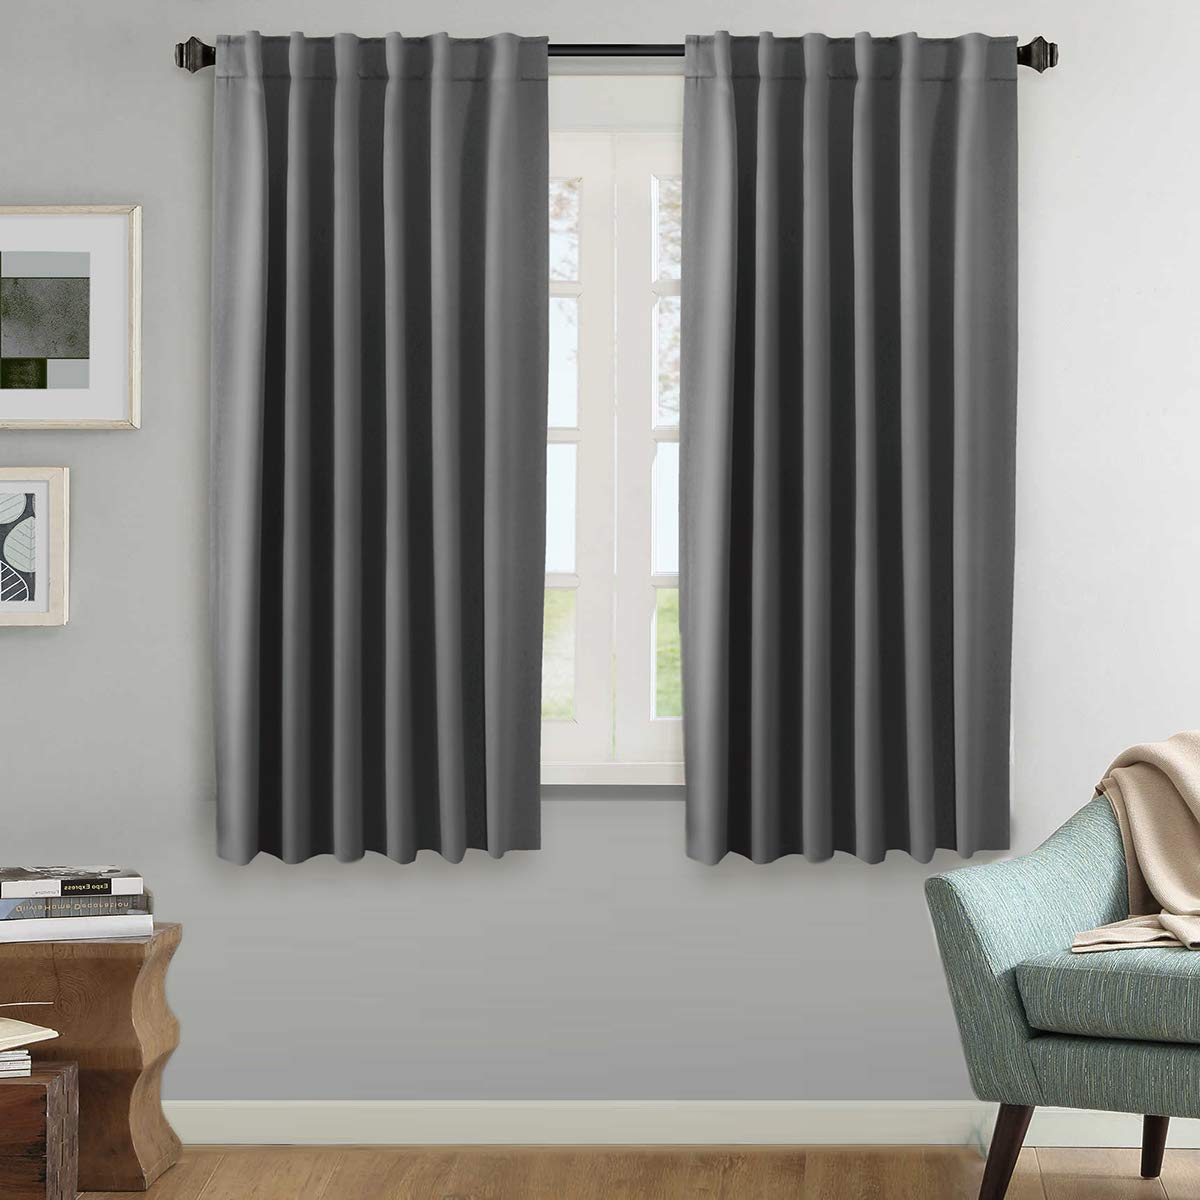 Well Known Thermal Rod Pocket Blackout Curtain Panel Pairs With H (View 18 of 20)